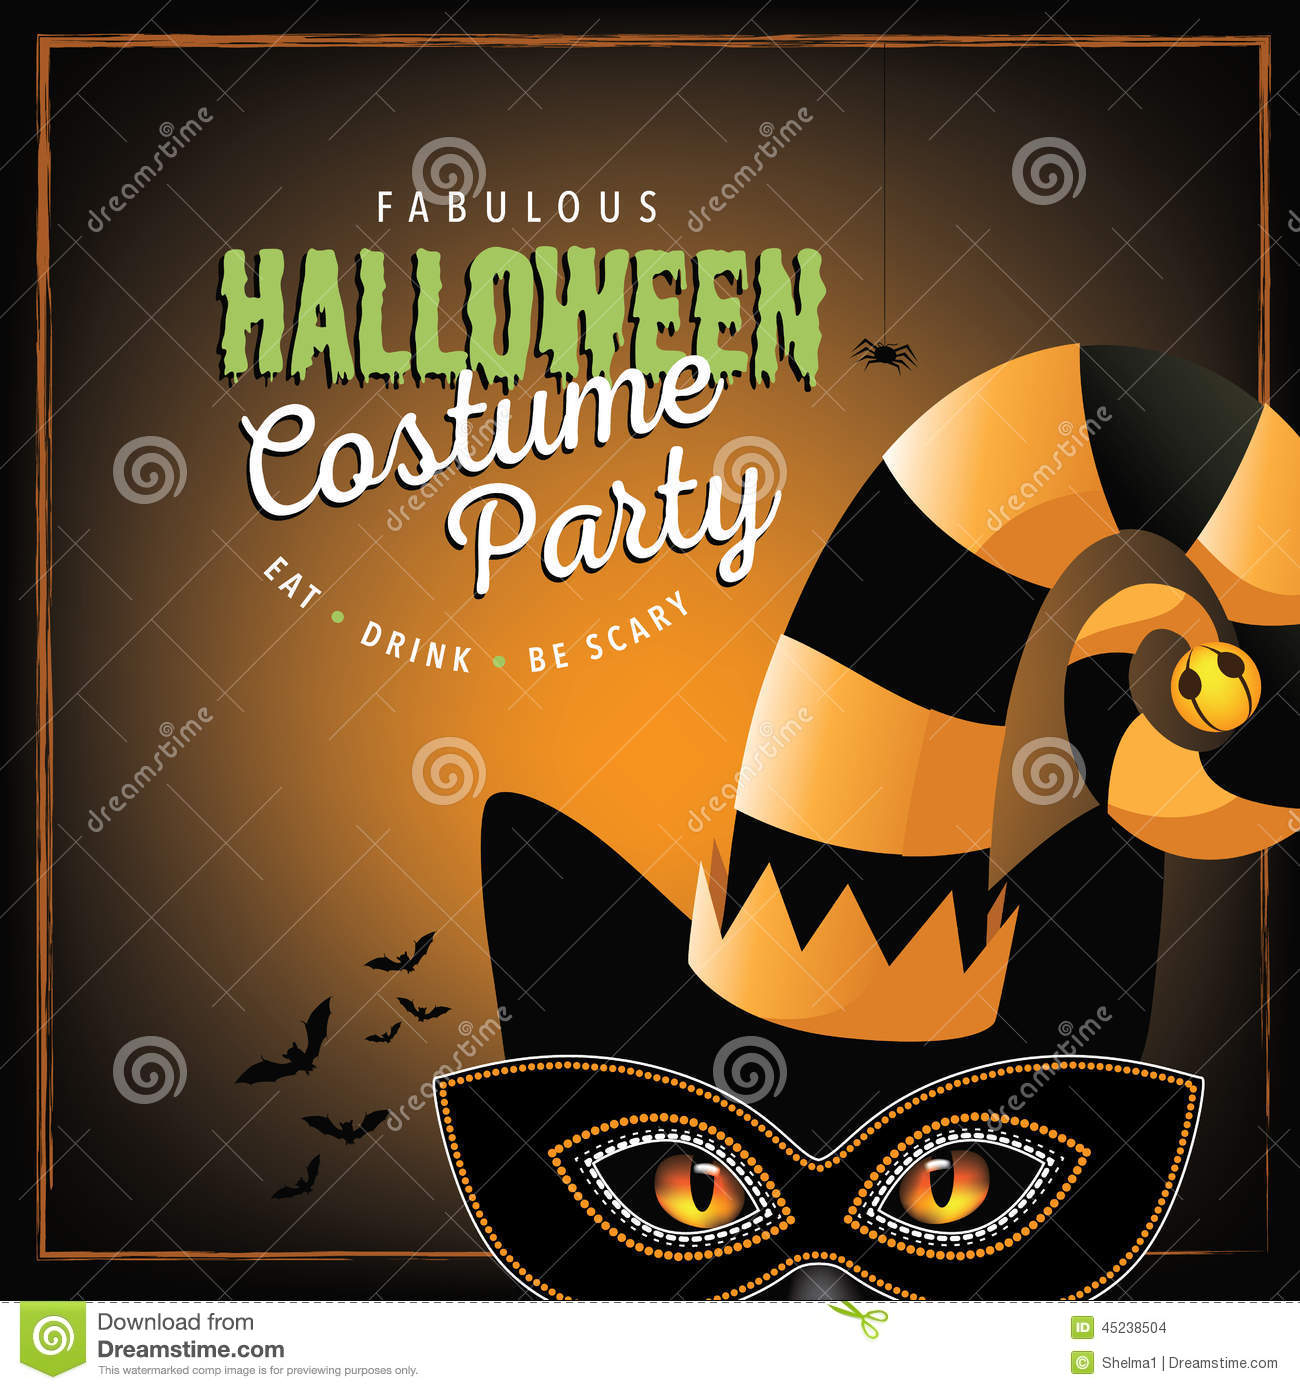 cat costume halloween party design stock vector illustration of